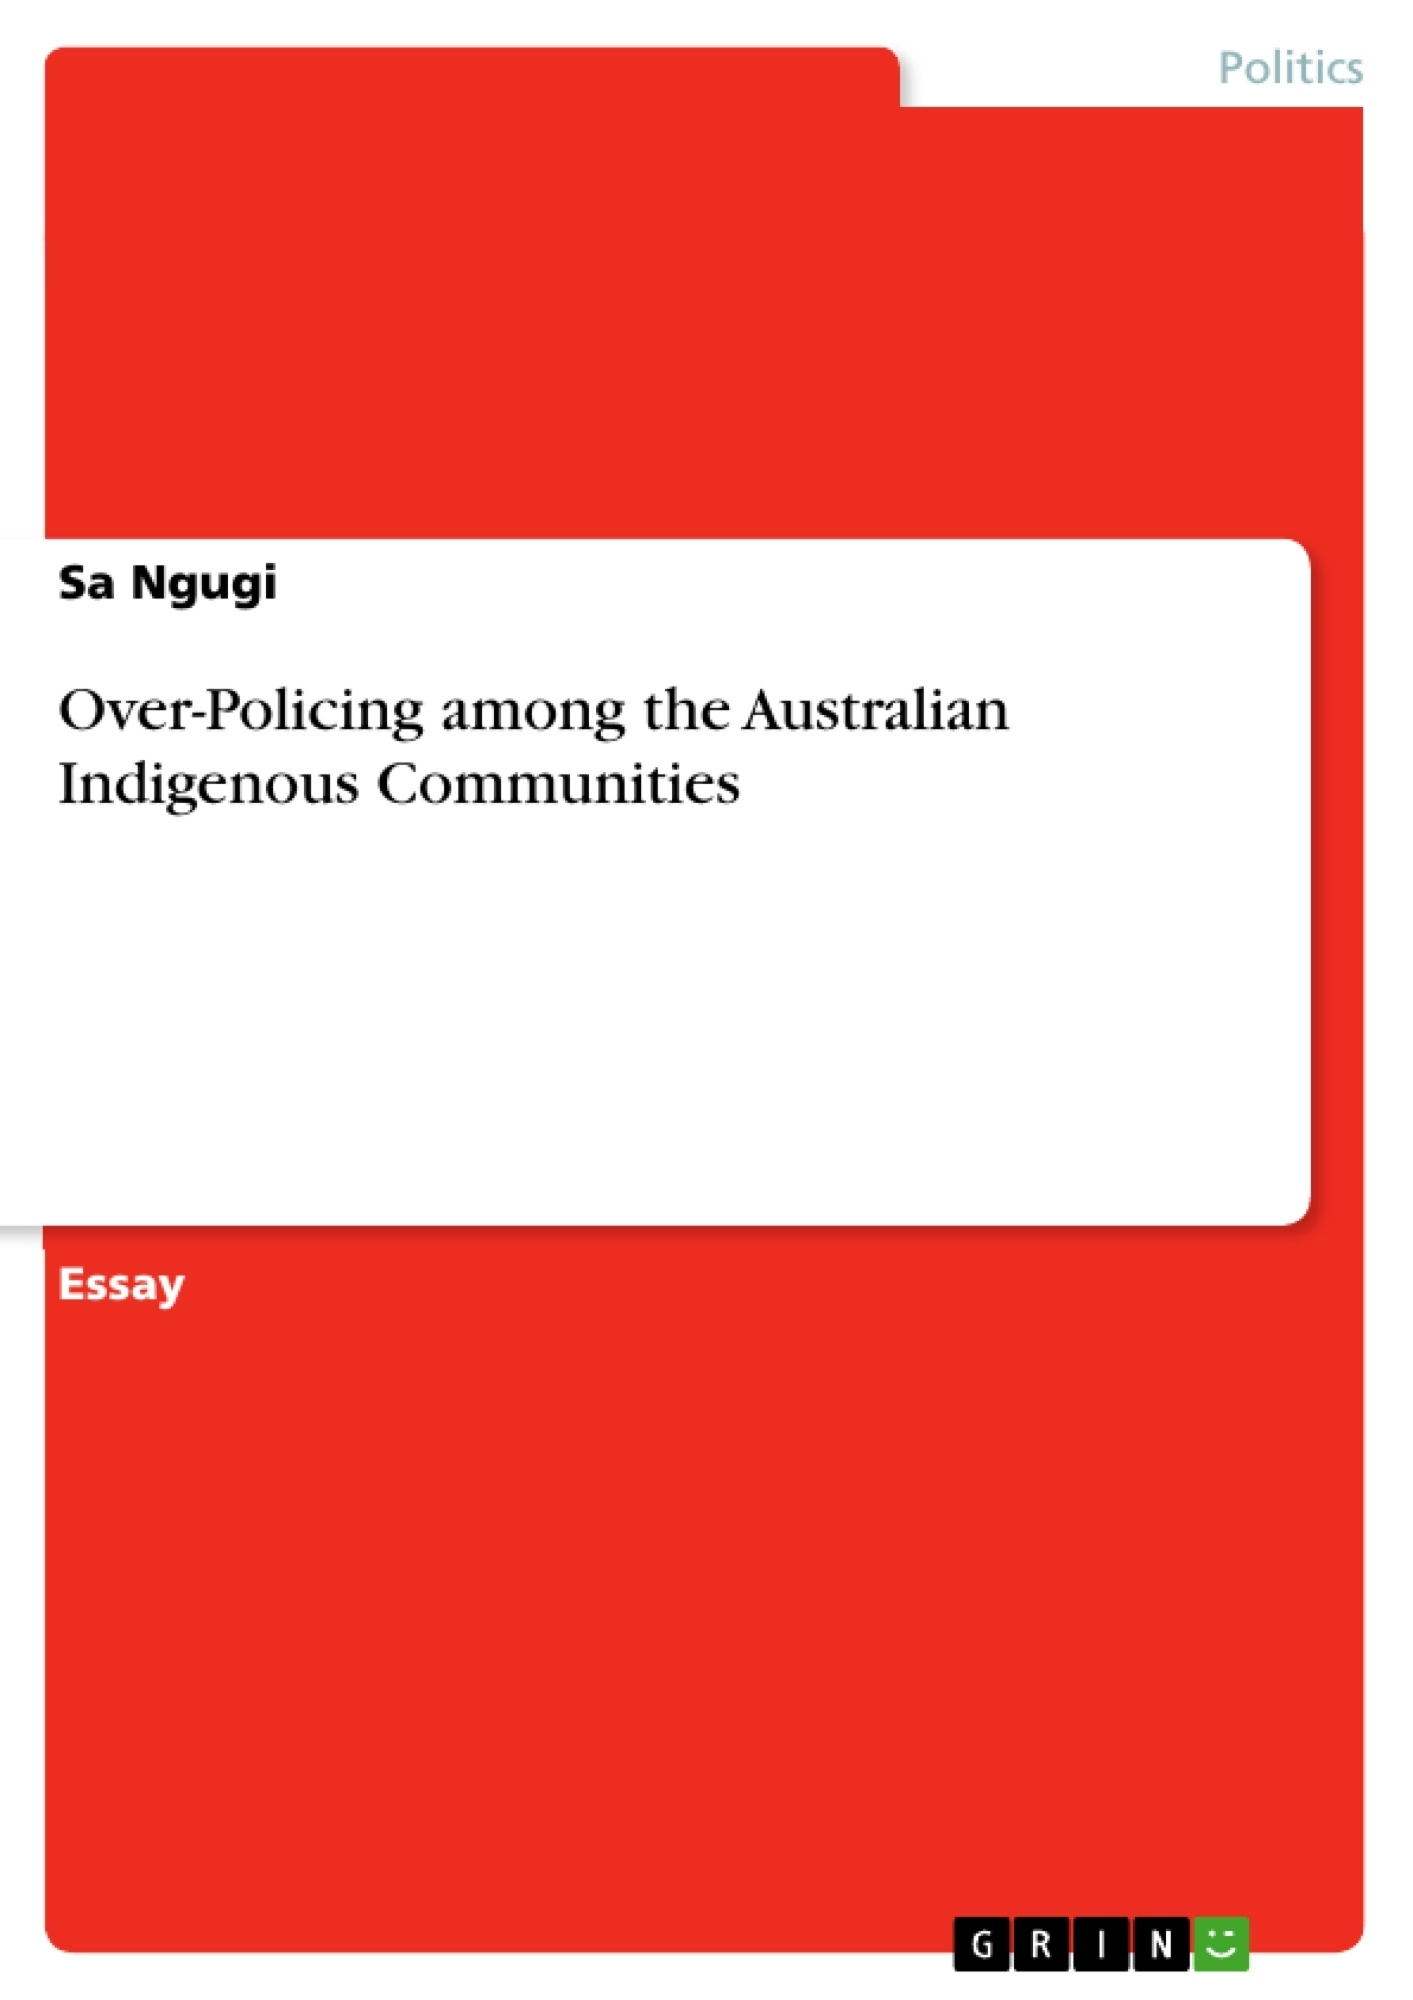 Title: Over-Policing among the Australian Indigenous Communities